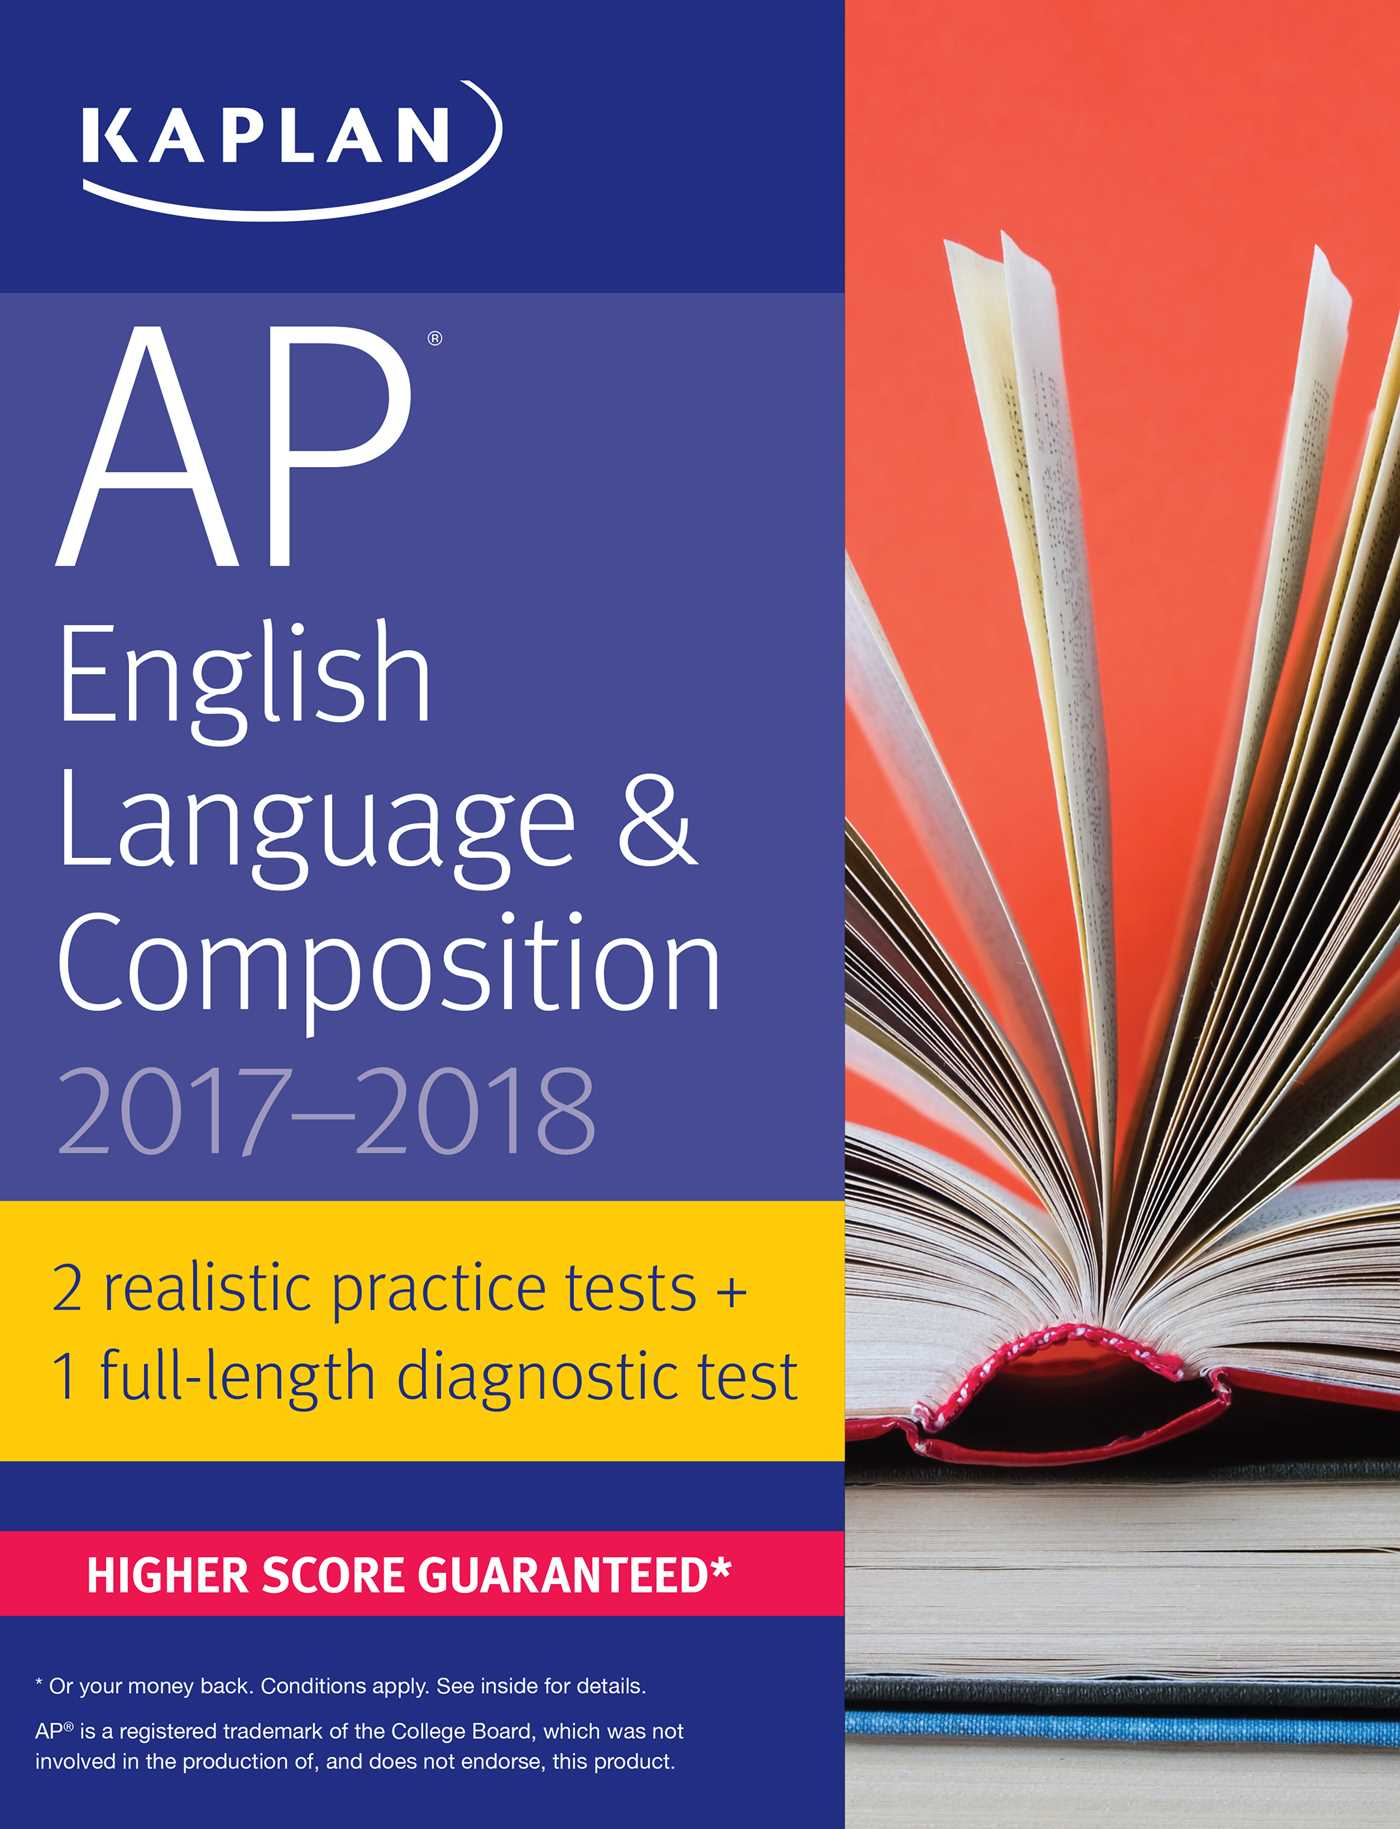 ap english language essay 2 Our review of essay basics and an in-depth analysis of the ap english language and composition essay prompts will help you improve your composition skills.